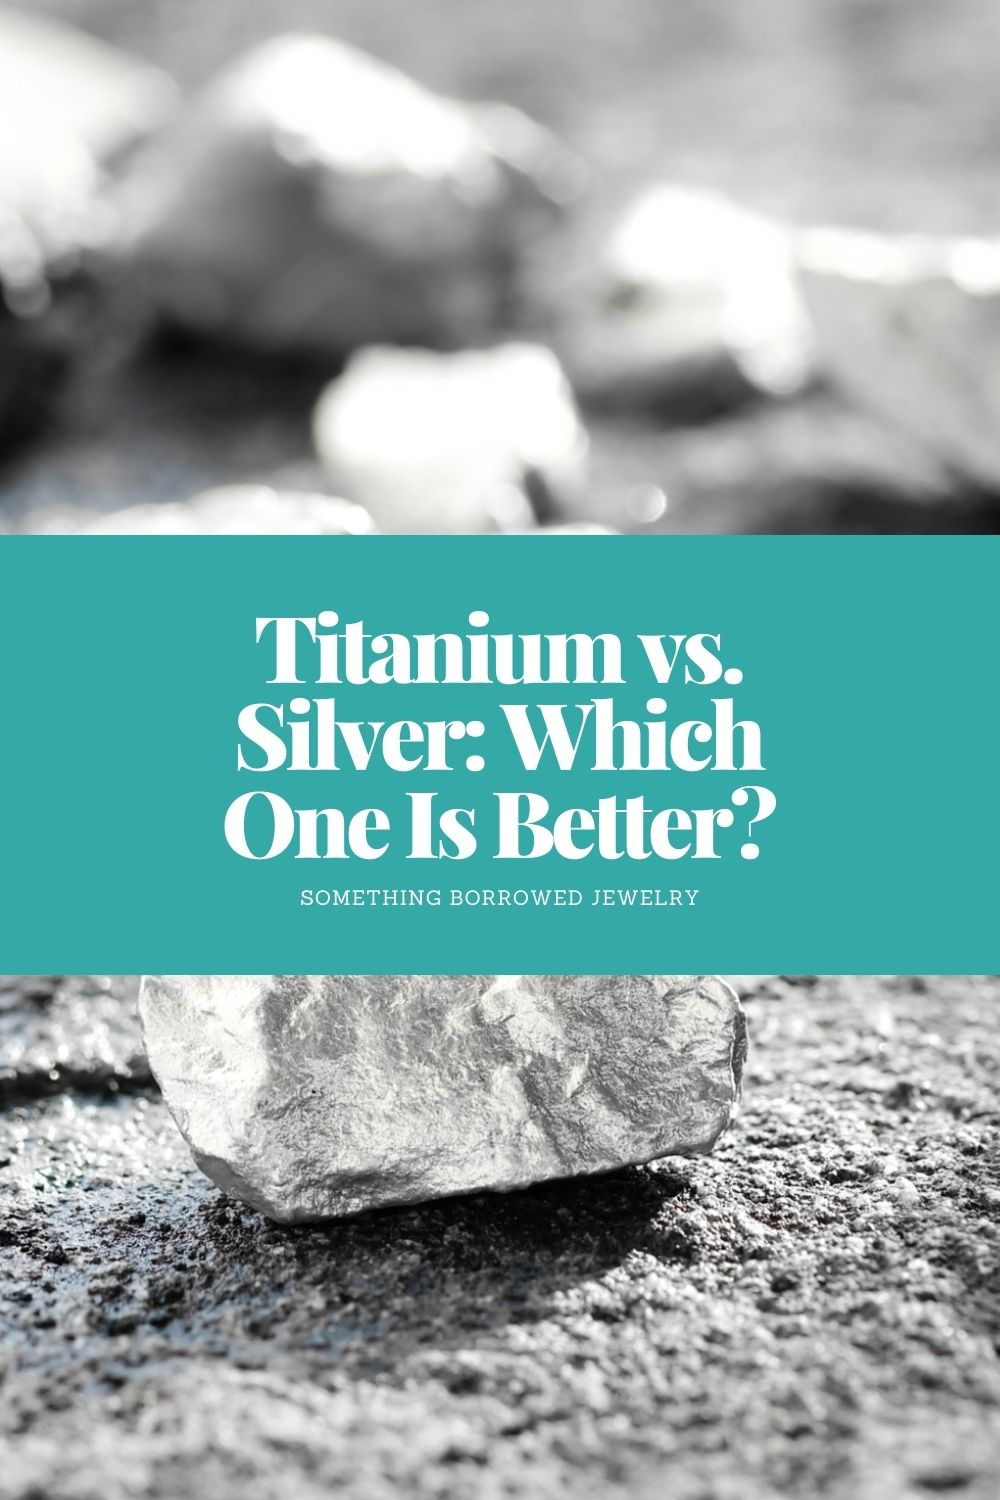 Titanium vs. Silver Which One Is Better pin